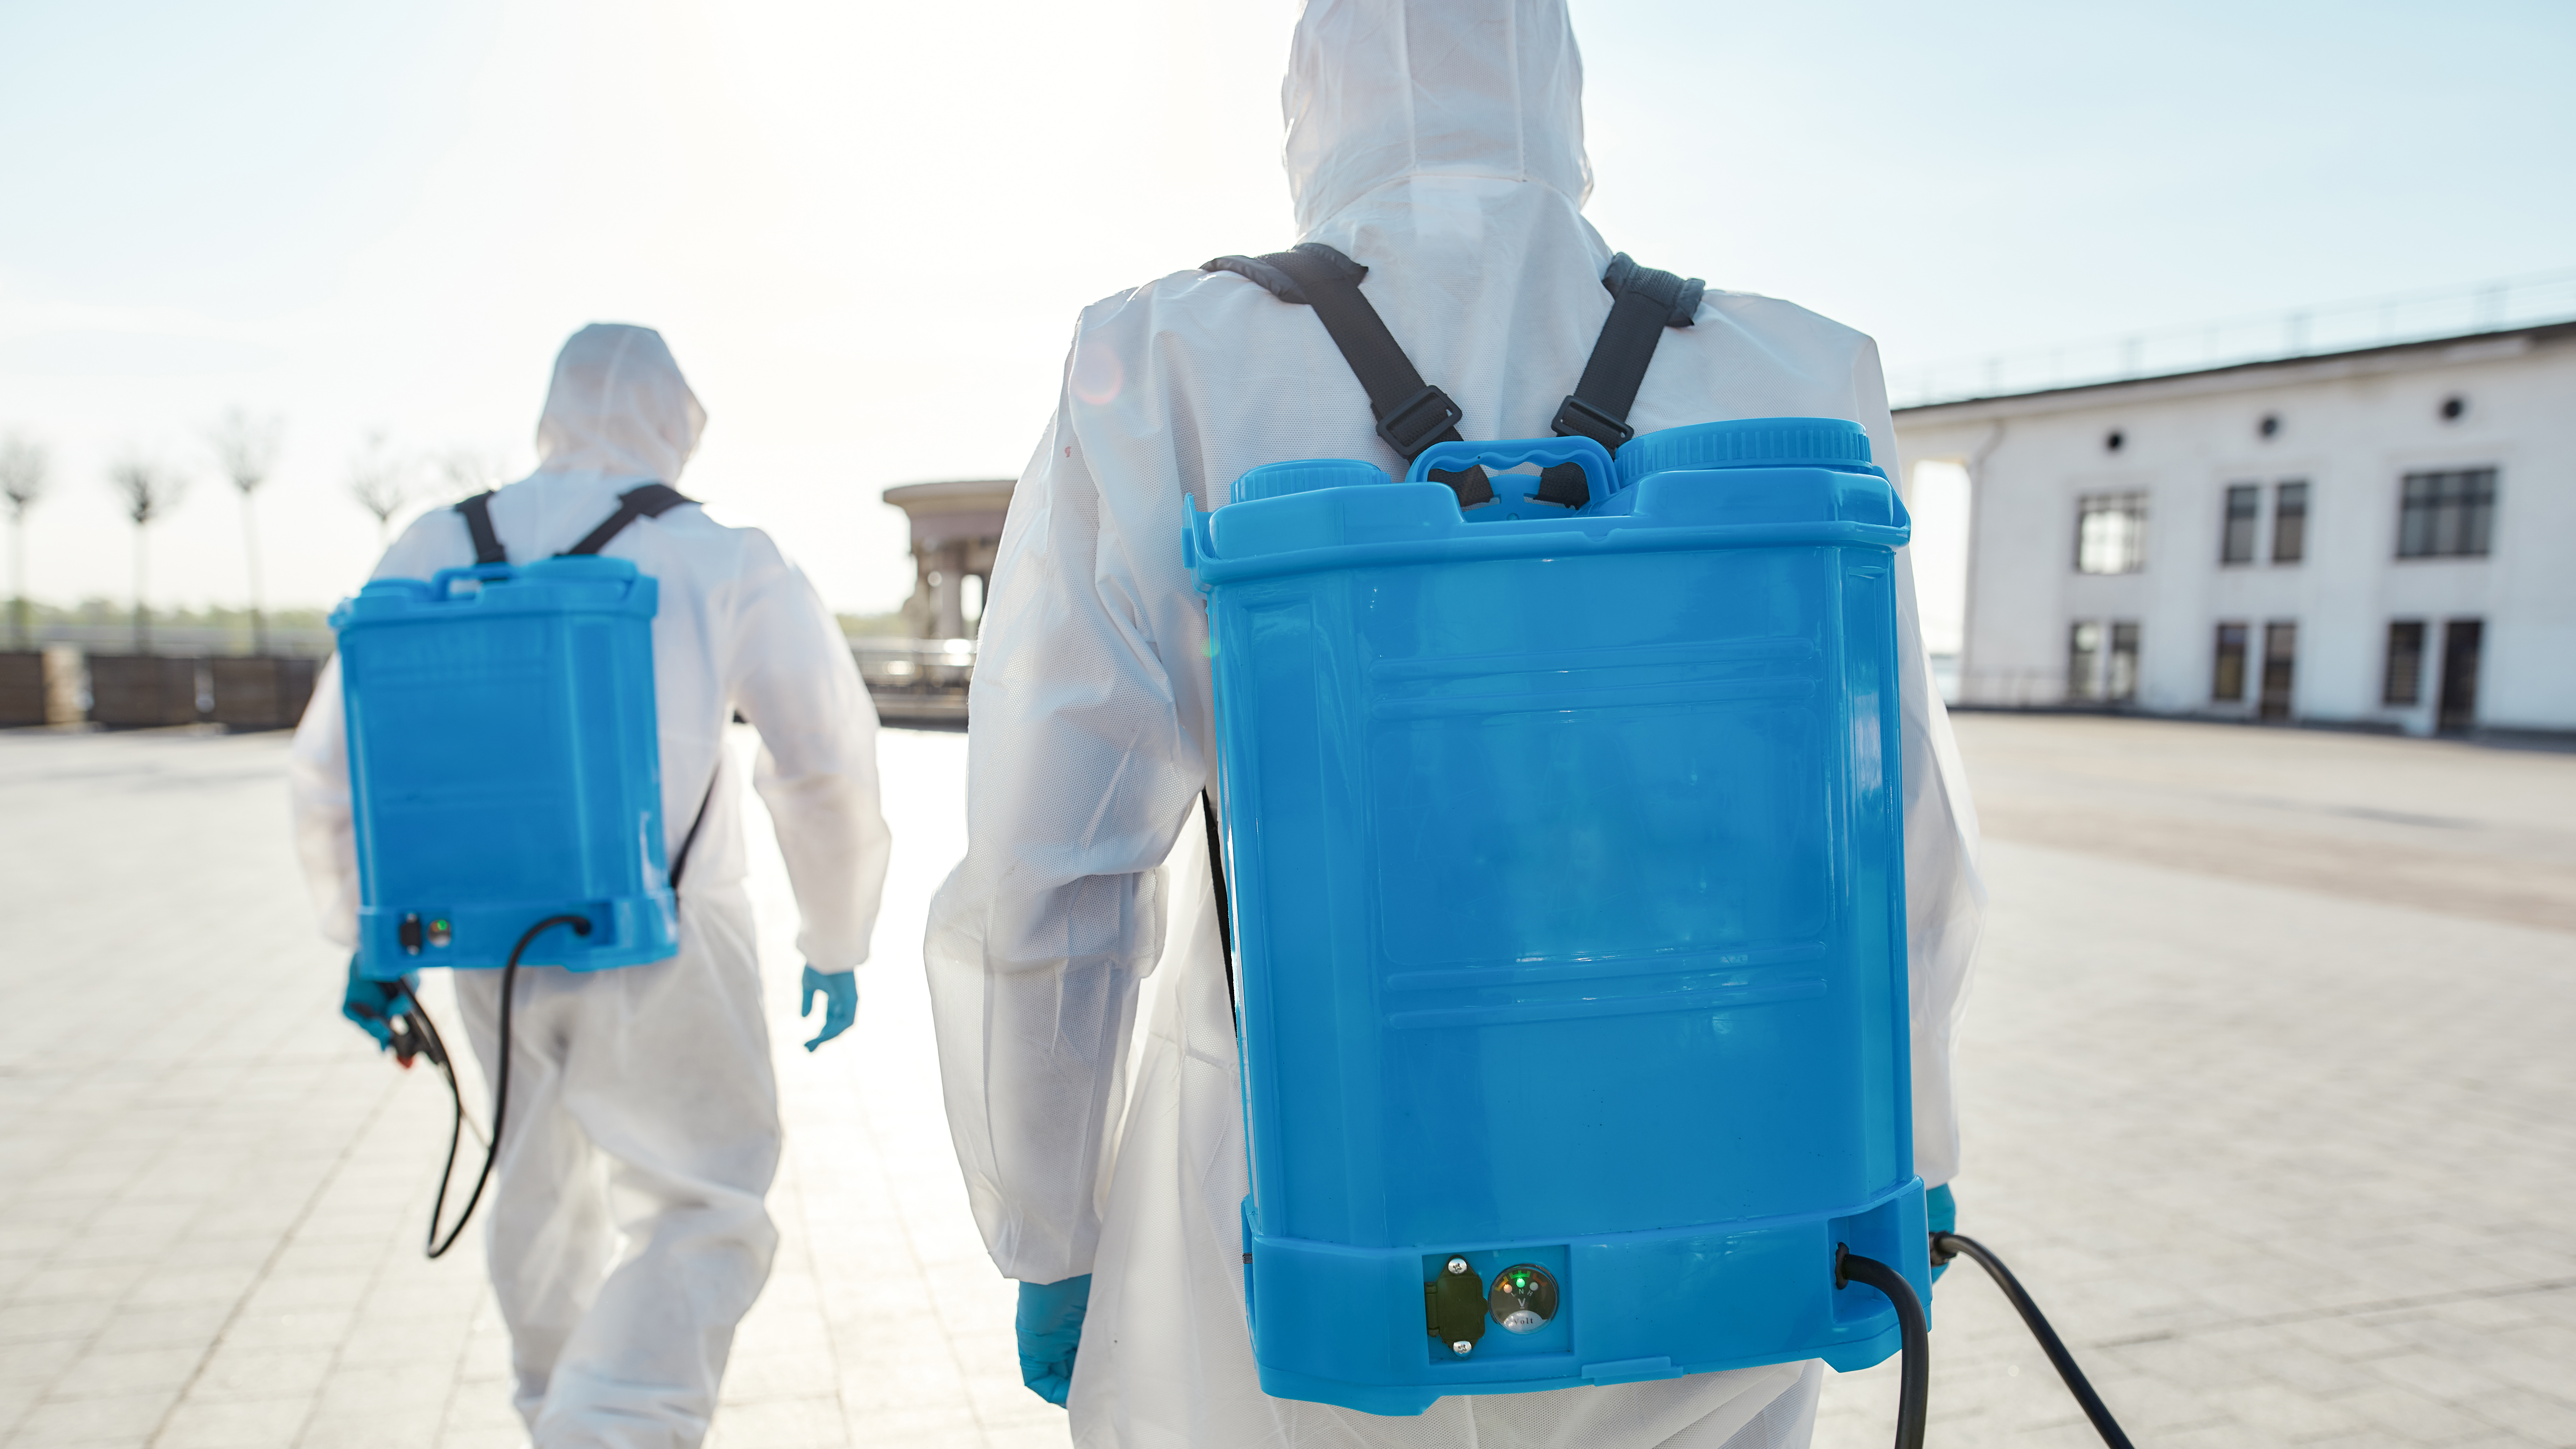 Ask the Expert: Why Can't Electrostatic Sprayers Be Used with Disinfects?